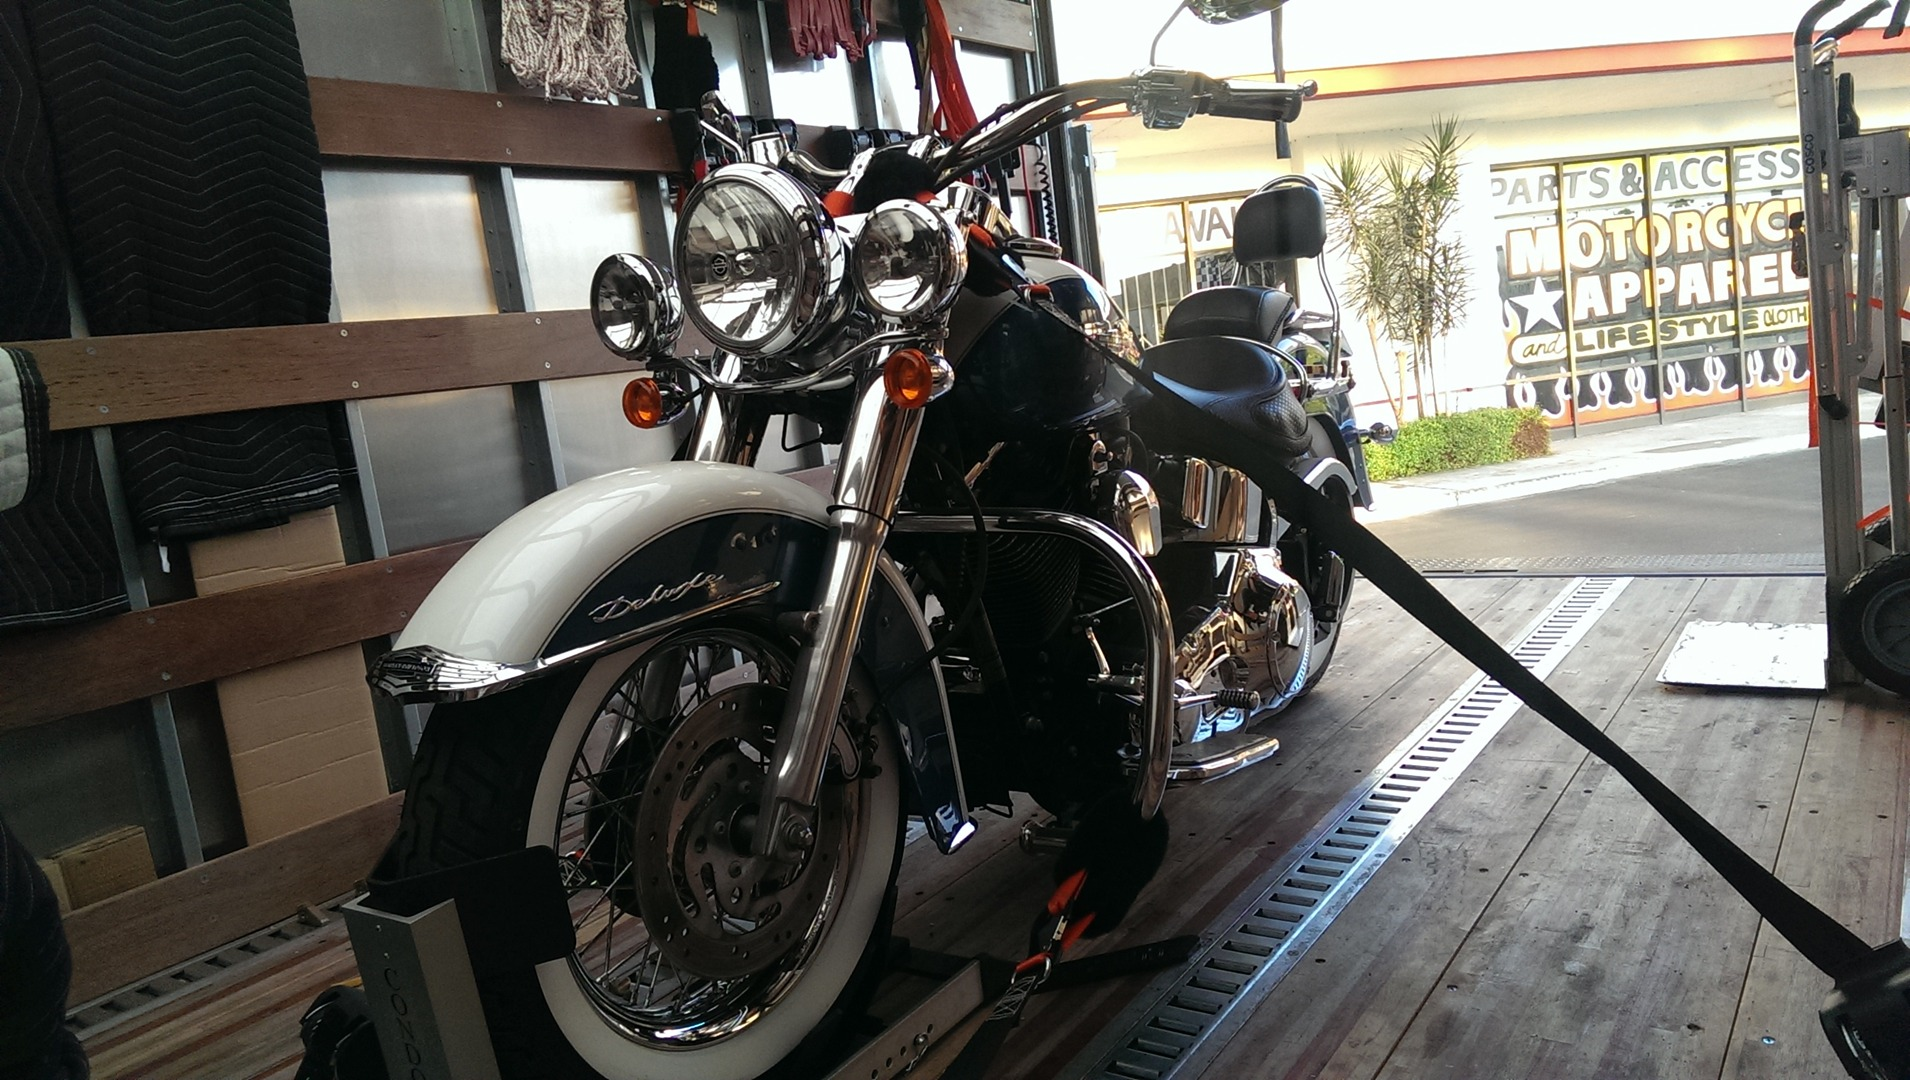 Motorcycle Shipping Quote Professional Motorcycle Shipping Services Across Canada And Usa